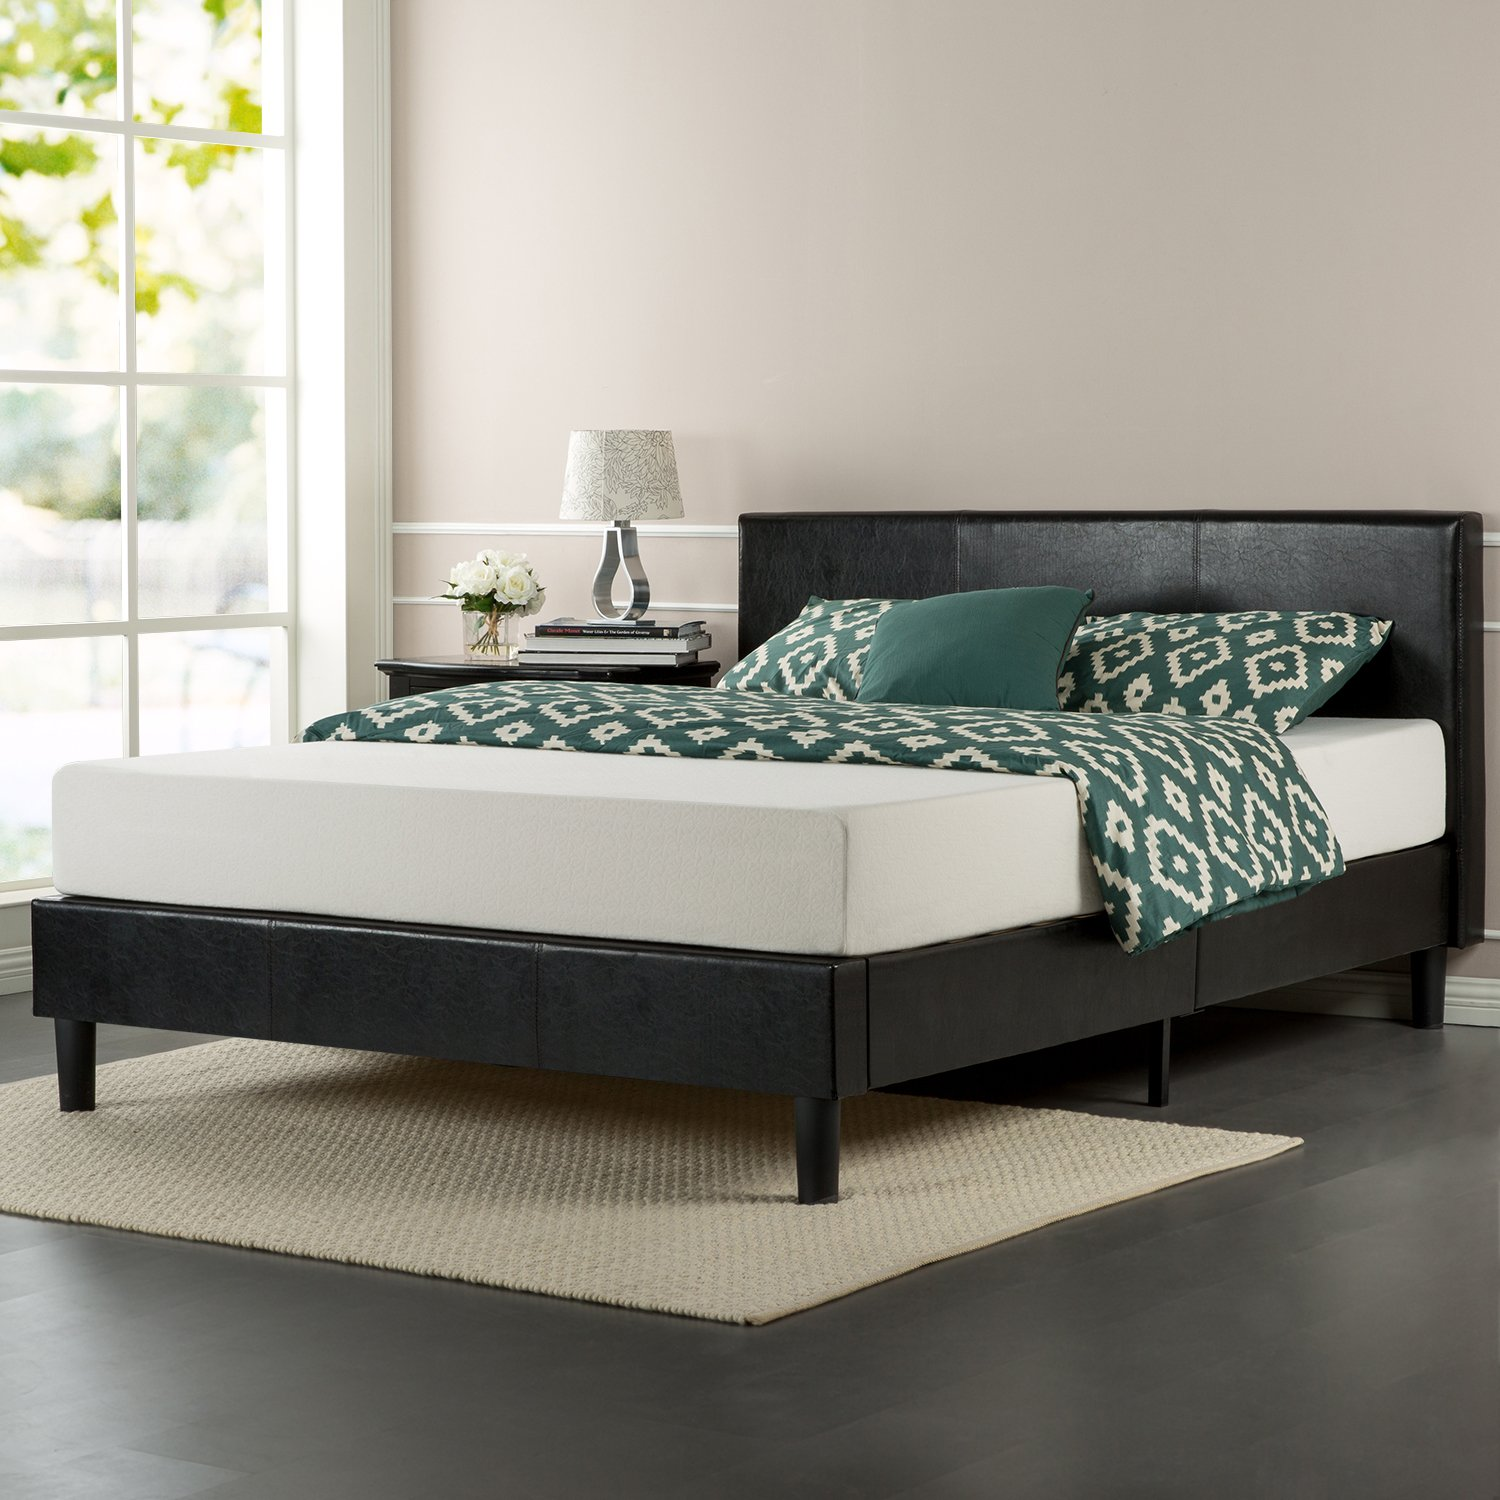 7 Modern Platform Beds For Minimalist Bedrooms Fine Tailored